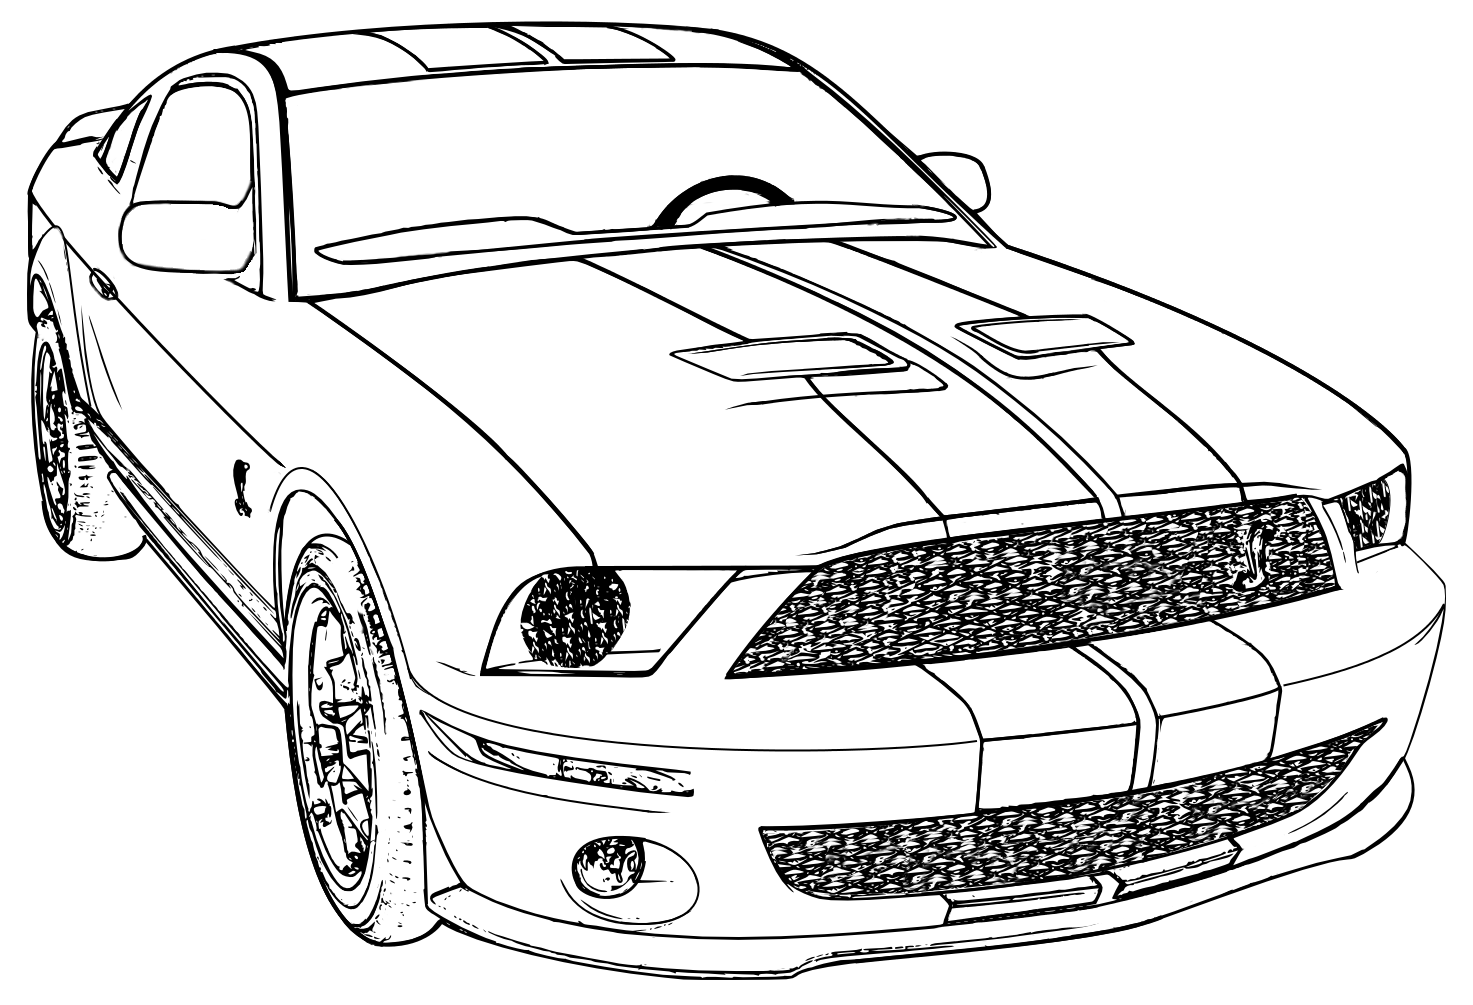 printable pictures of cars to color coloring pages for boys cars printable coloring home pictures of cars color to printable